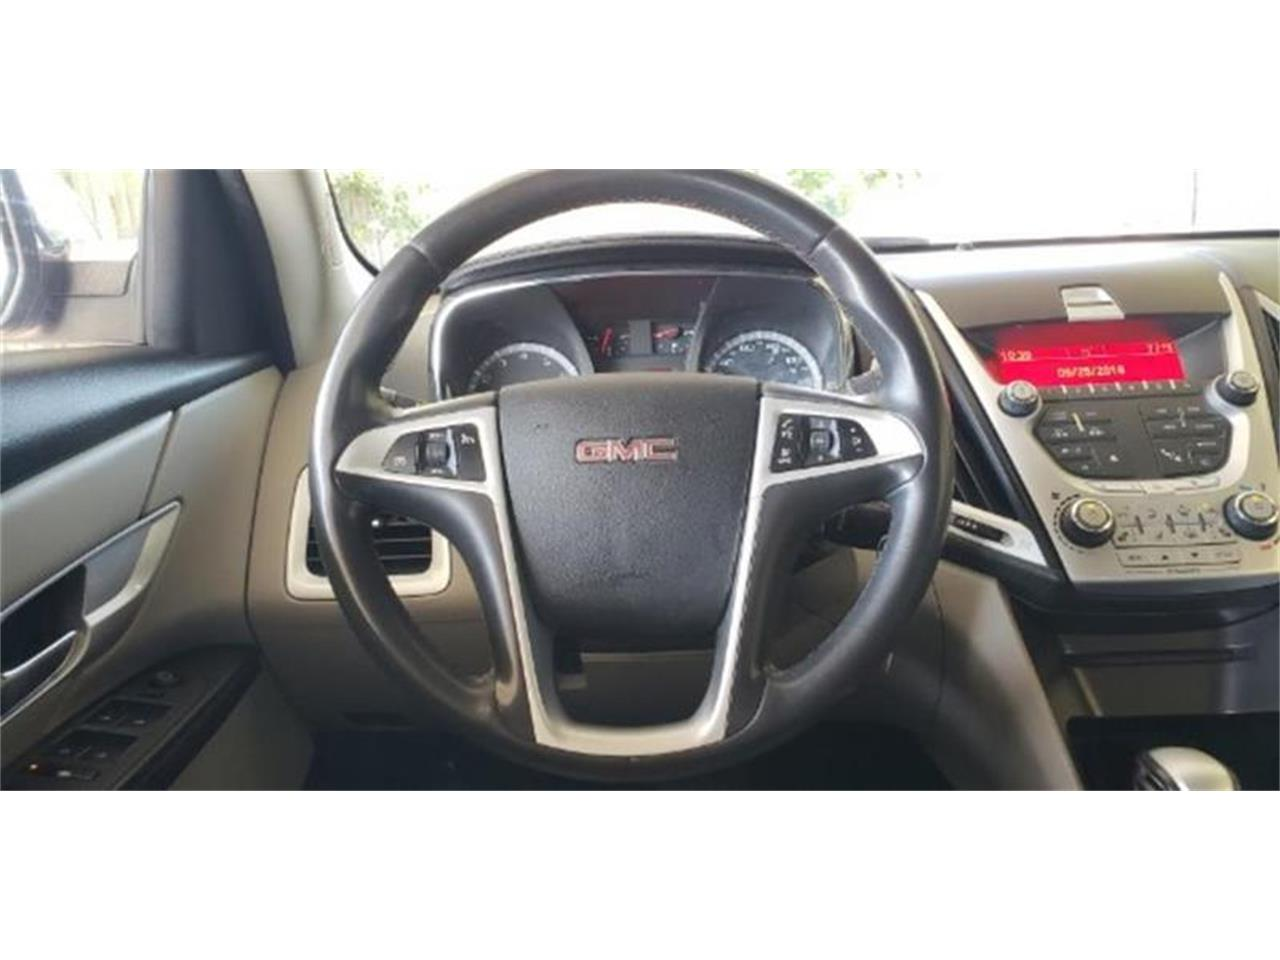 2011 GMC Truck for sale in Tavares, FL – photo 29